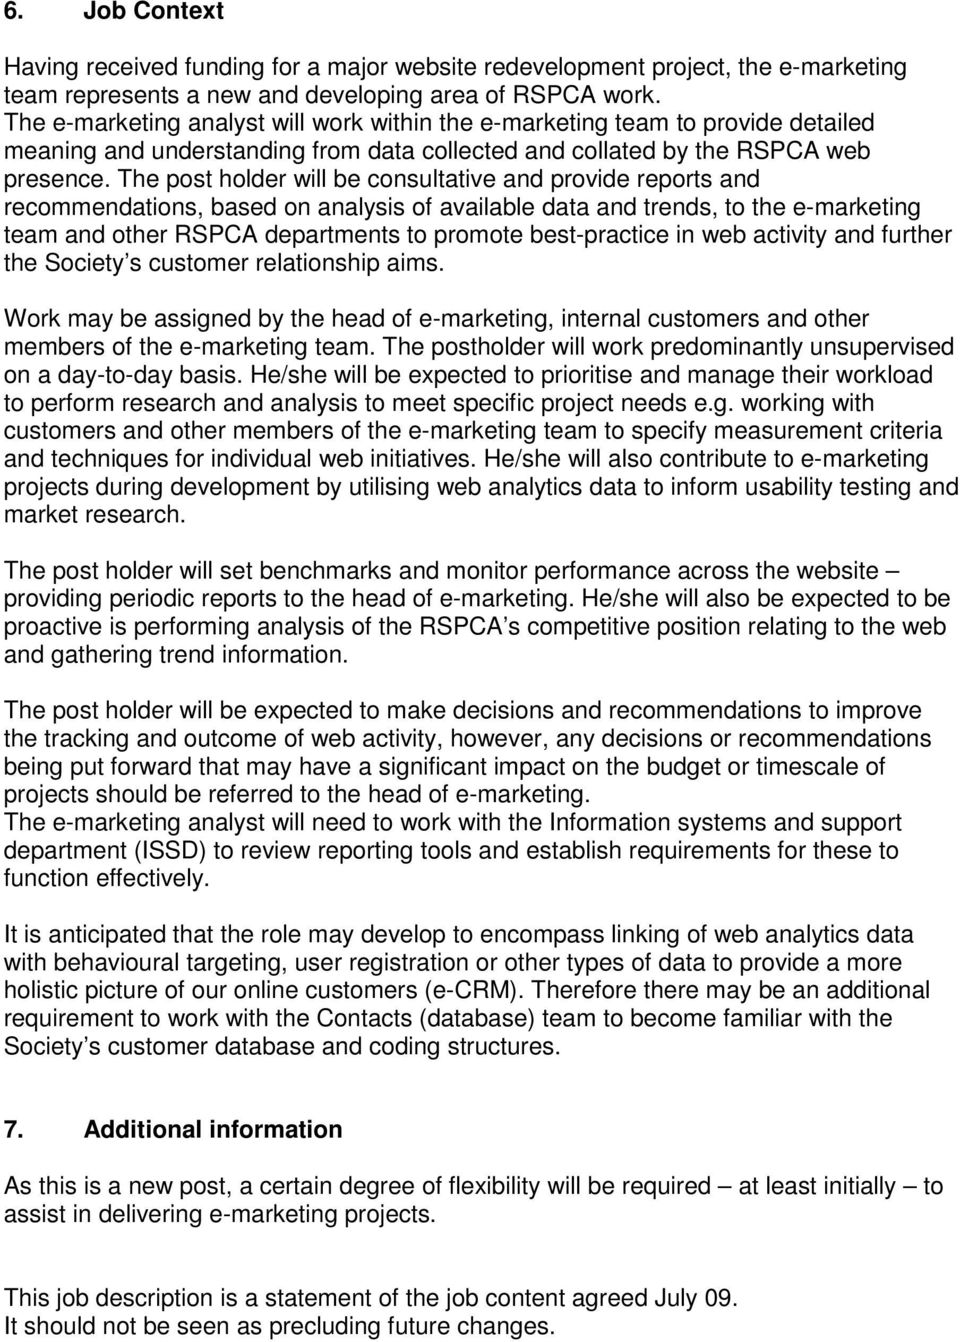 The post holder will be consultative and provide reports and recommendations, based on analysis of available data and trends, to the e-marketing team and other RSPCA departments to promote